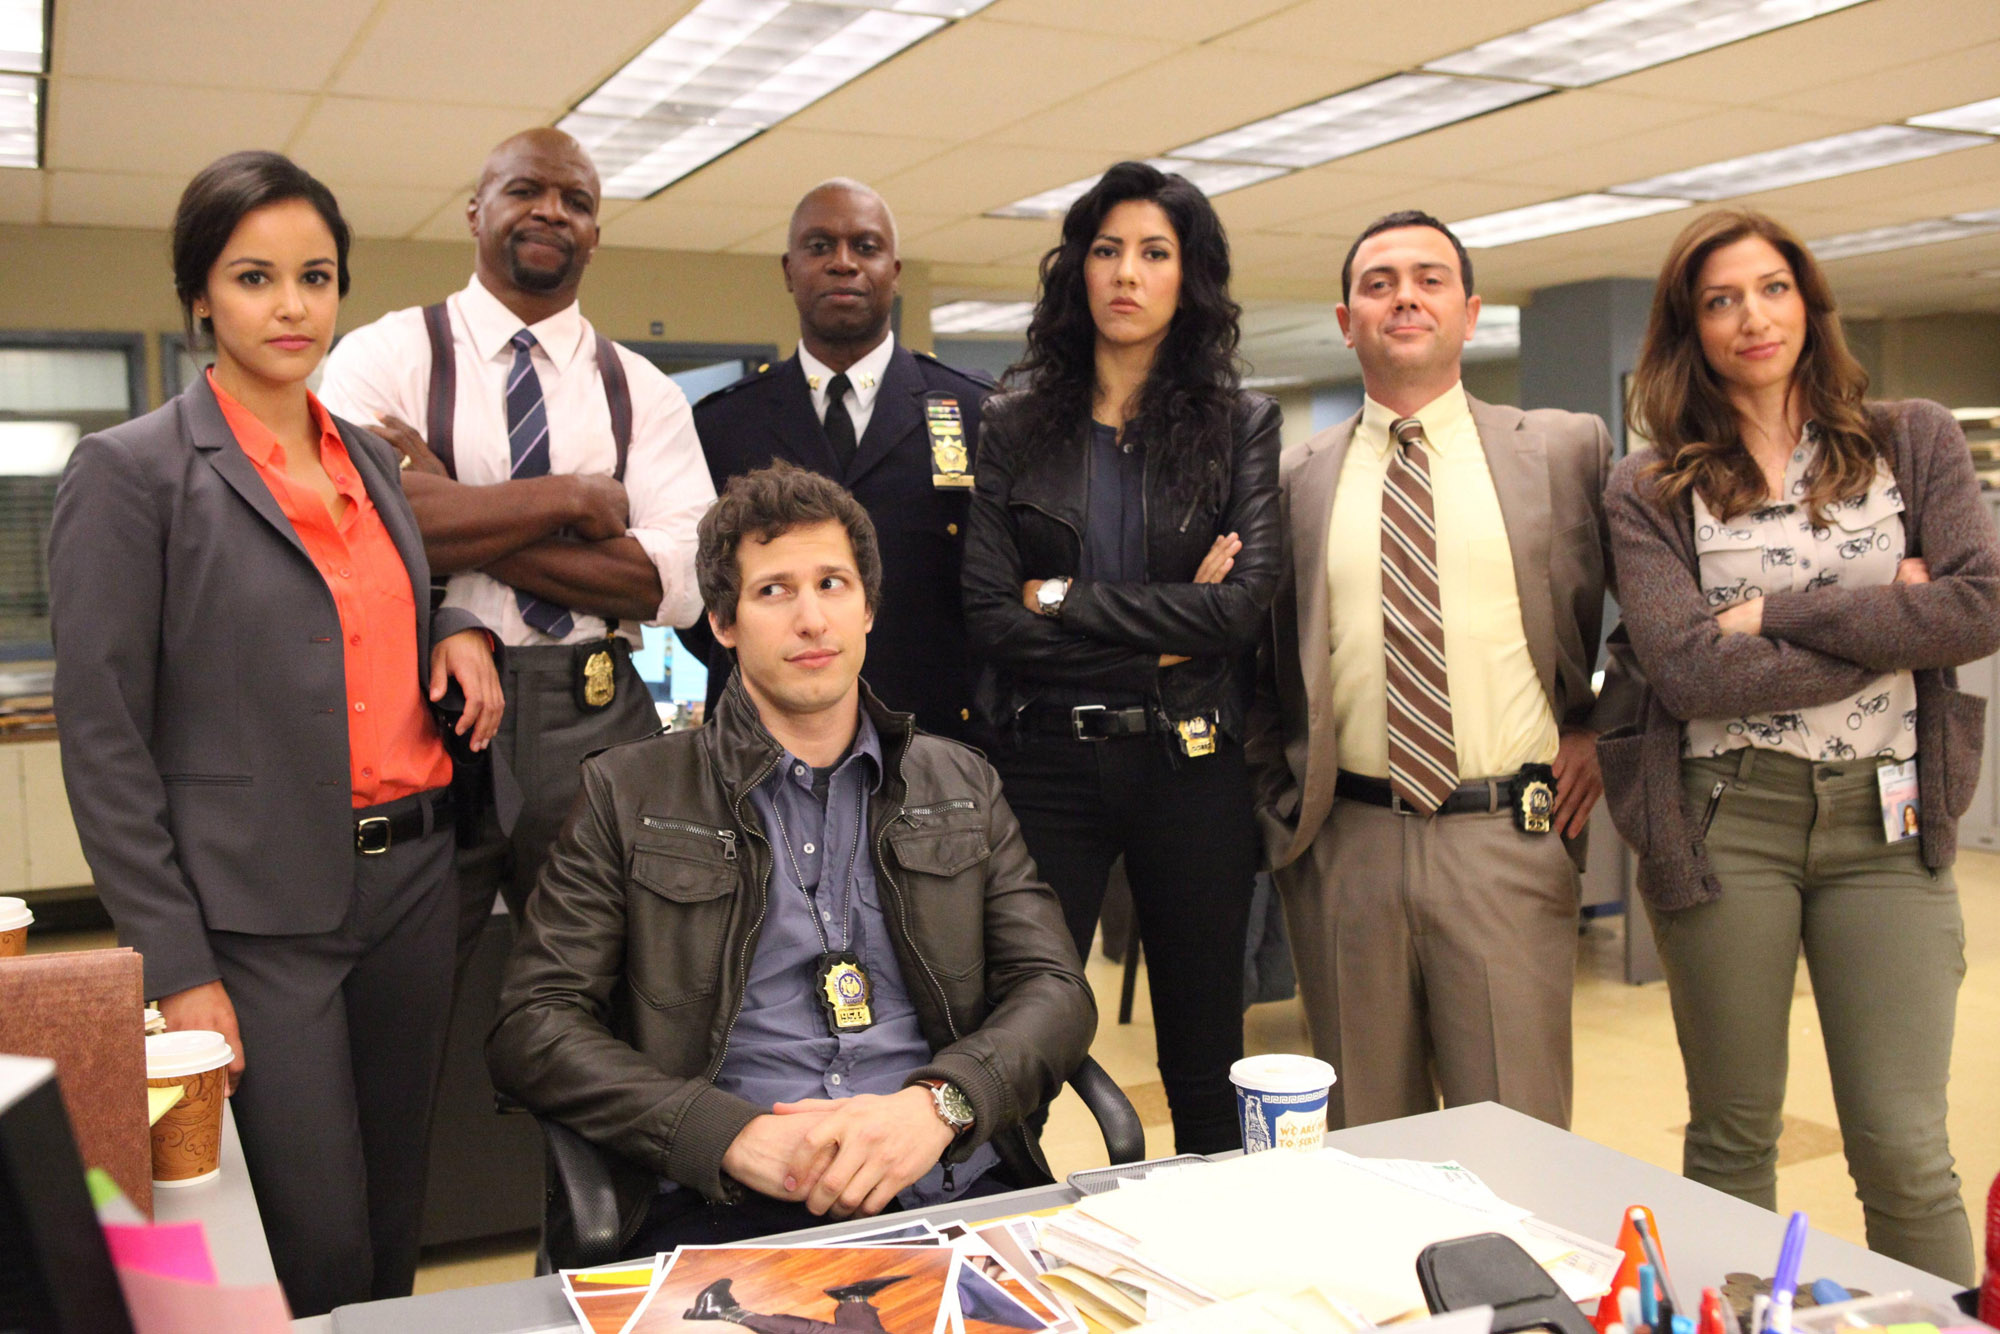 Brooklyn Nine-Nine Ready with Post-Super Bowl Episode